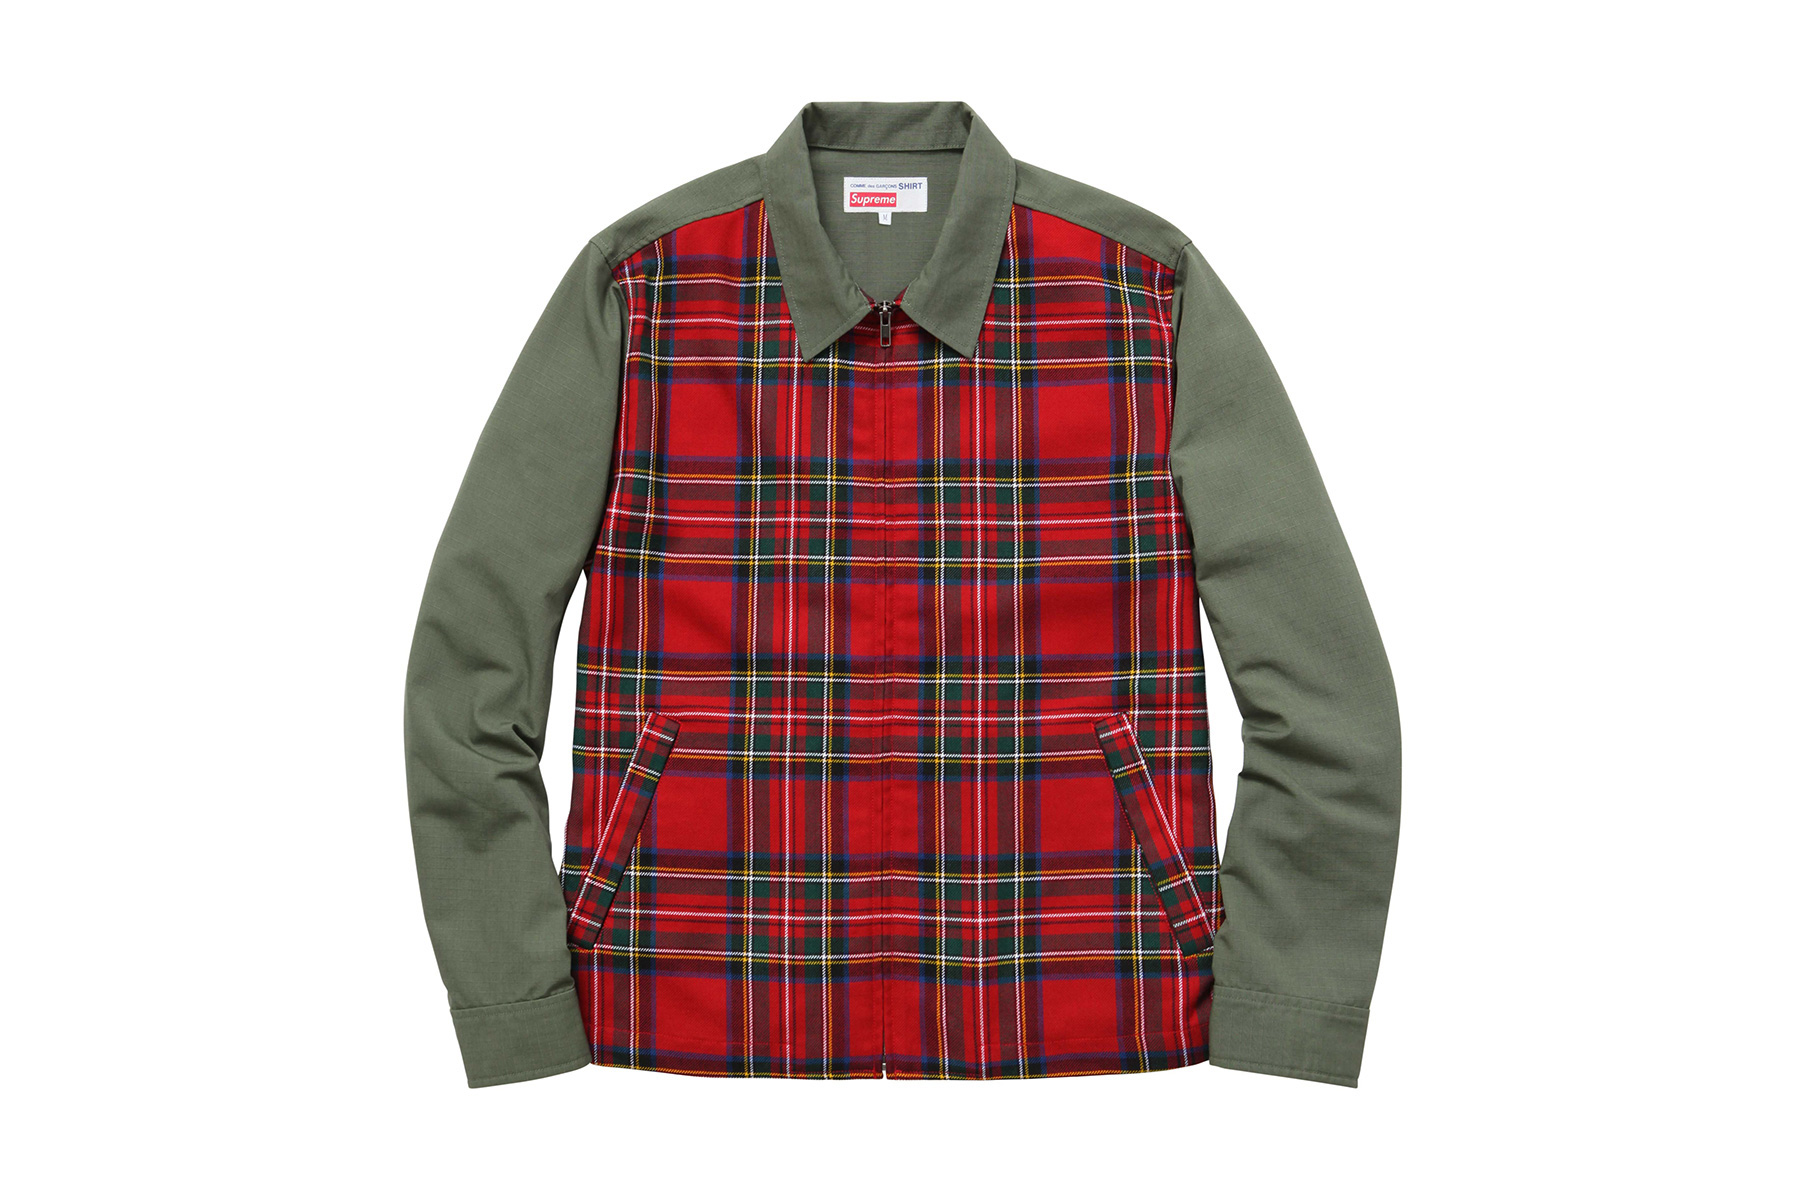 COMME des GARÇONS SHIRT x Supreme 2015 Fall/Winter Collection